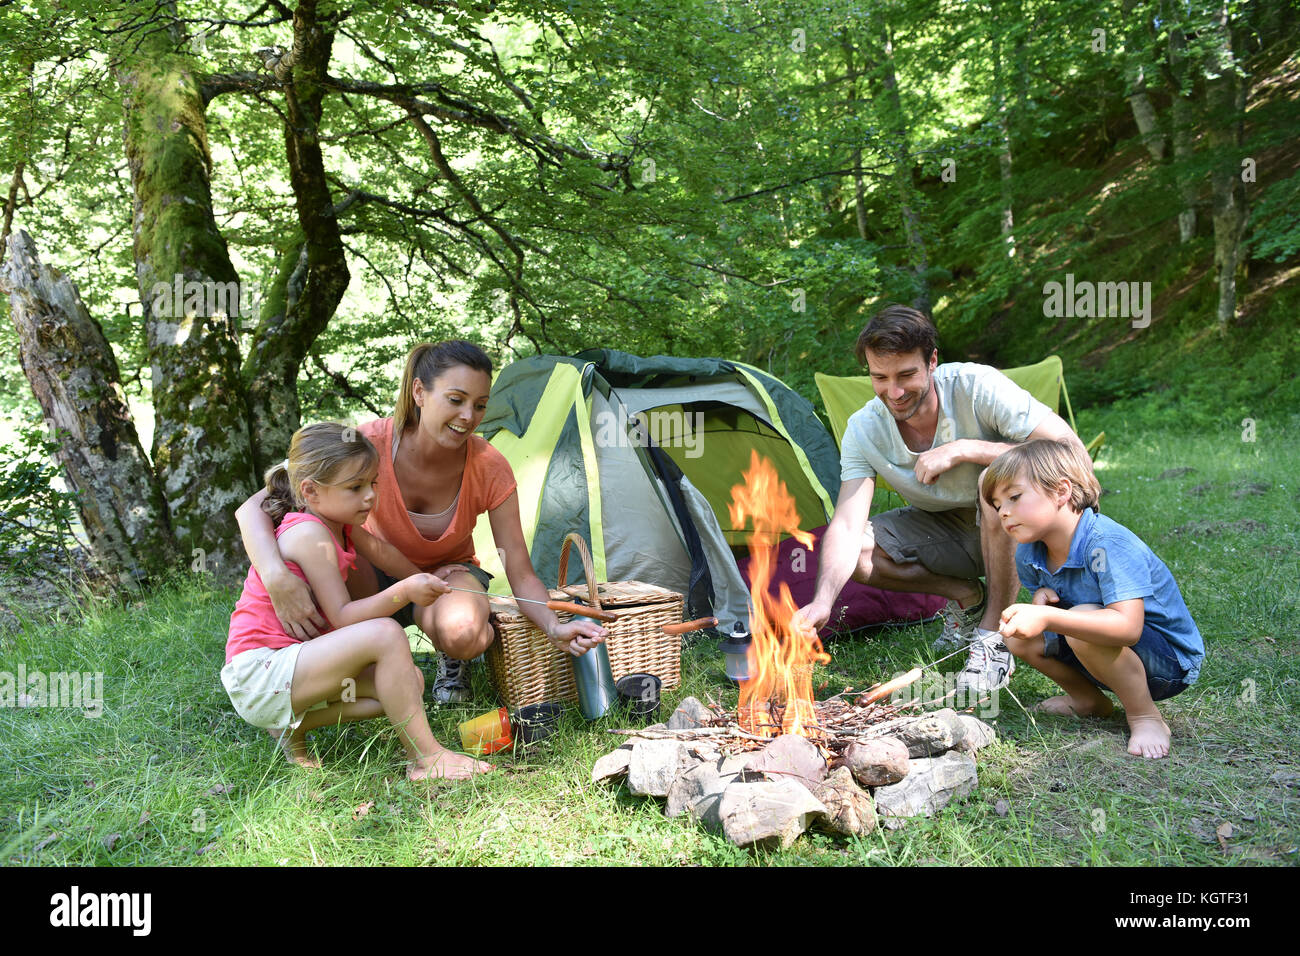 Family camping and cooking sausages in campfire - Stock Image